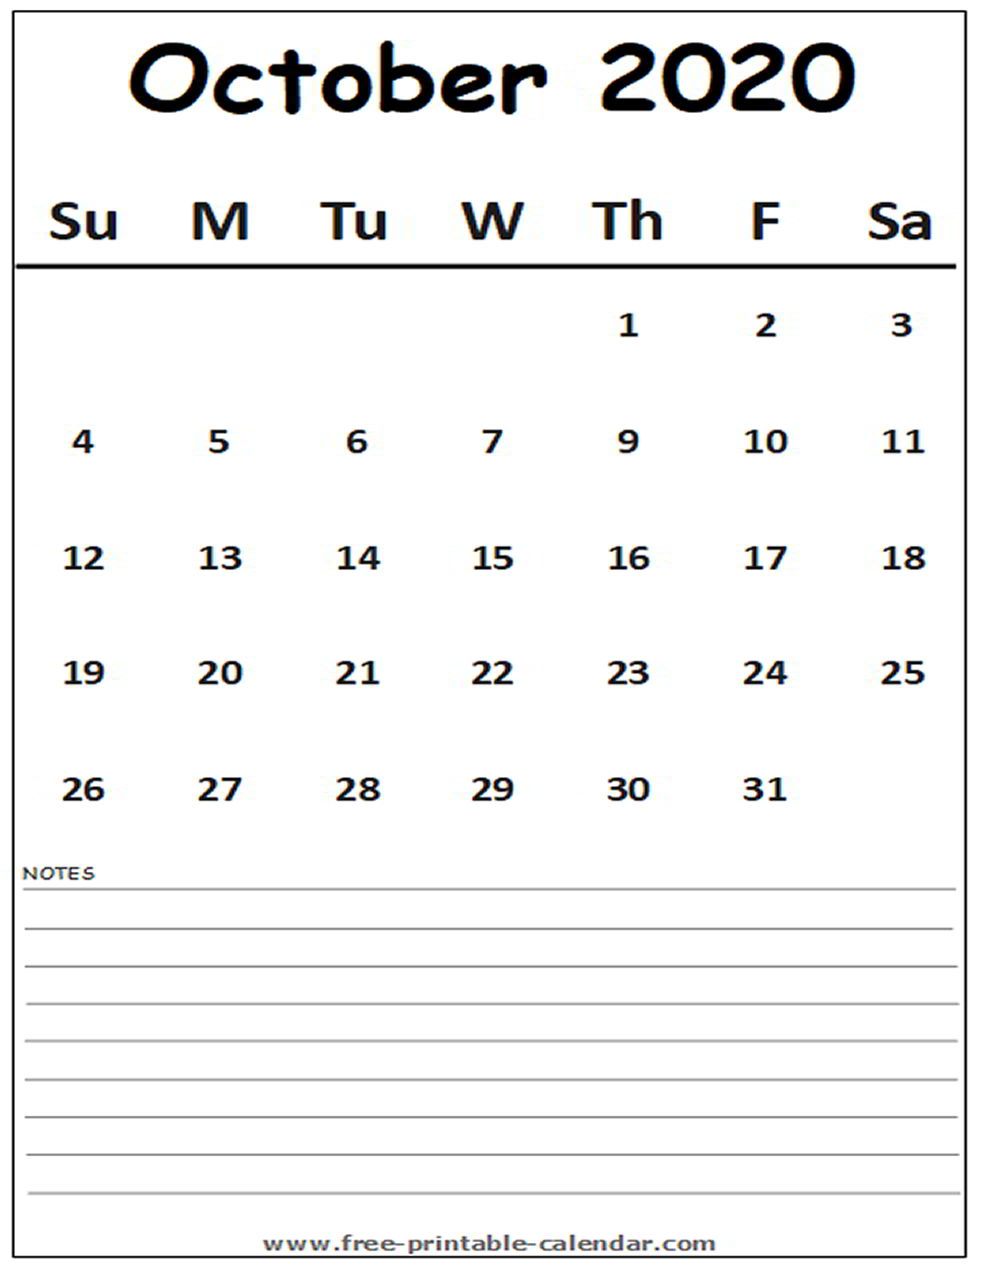 Fillable Calendar For October 2020